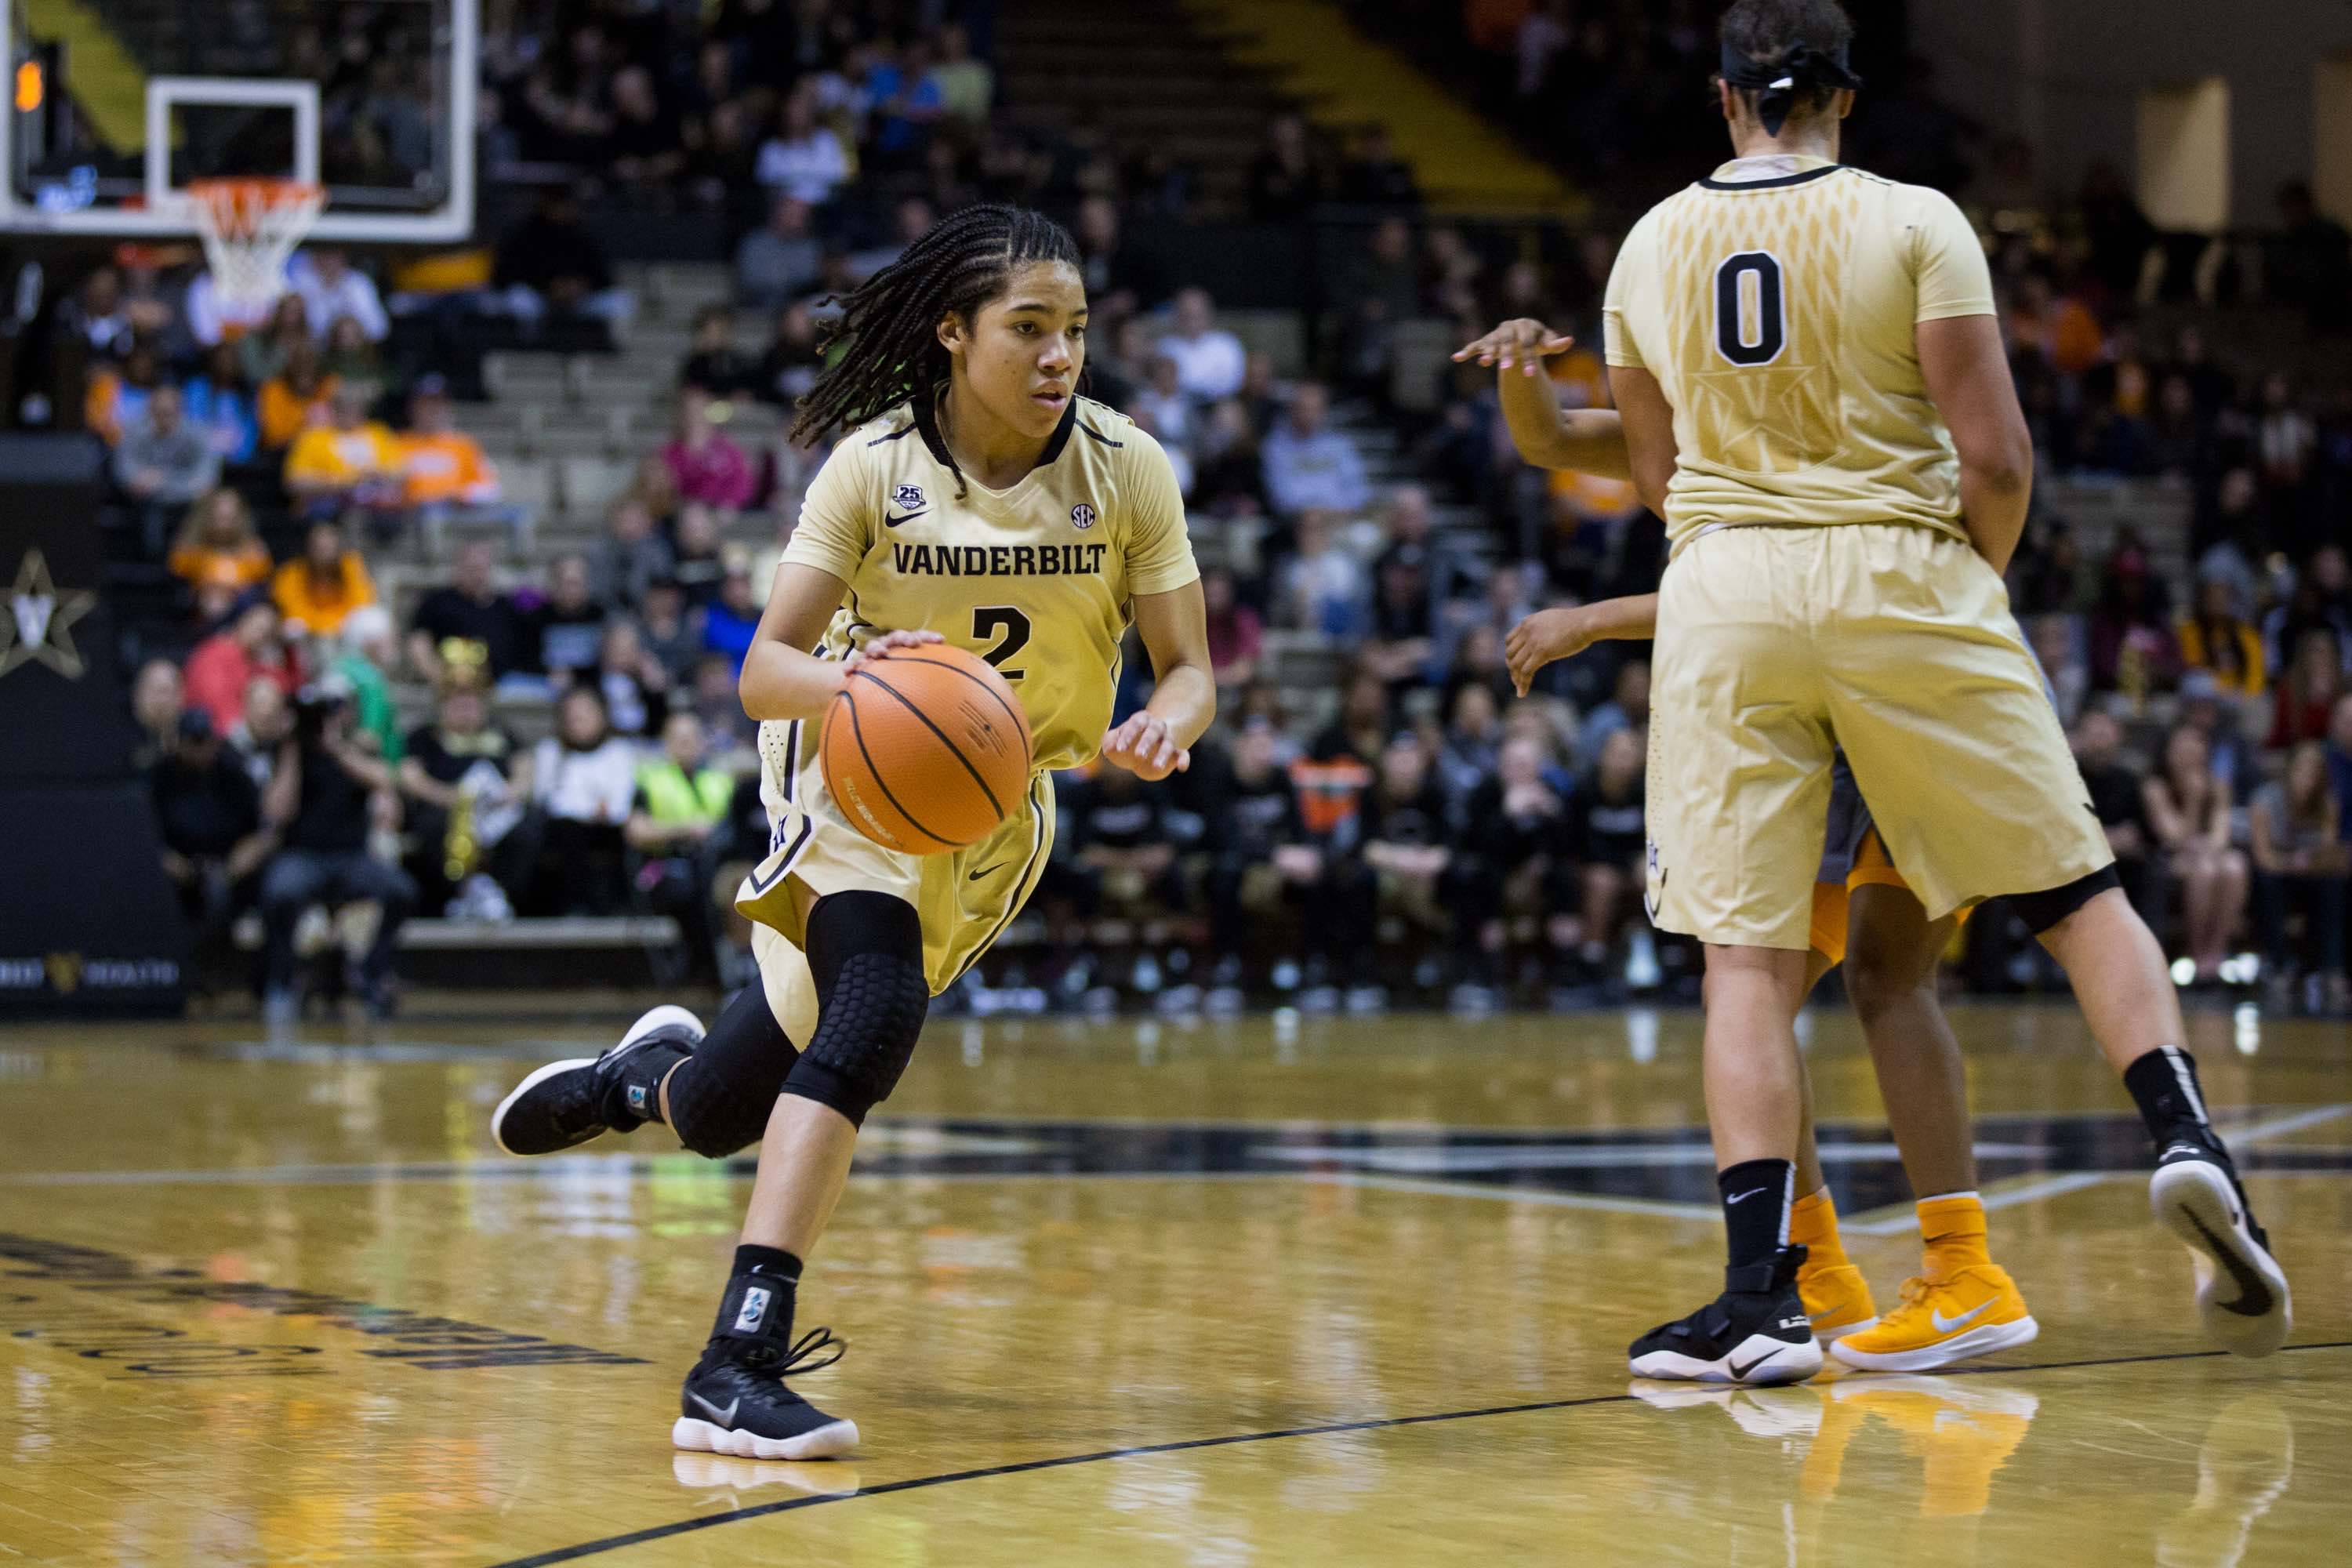 Vanderbilt falls to Tennessee 82-65 at home